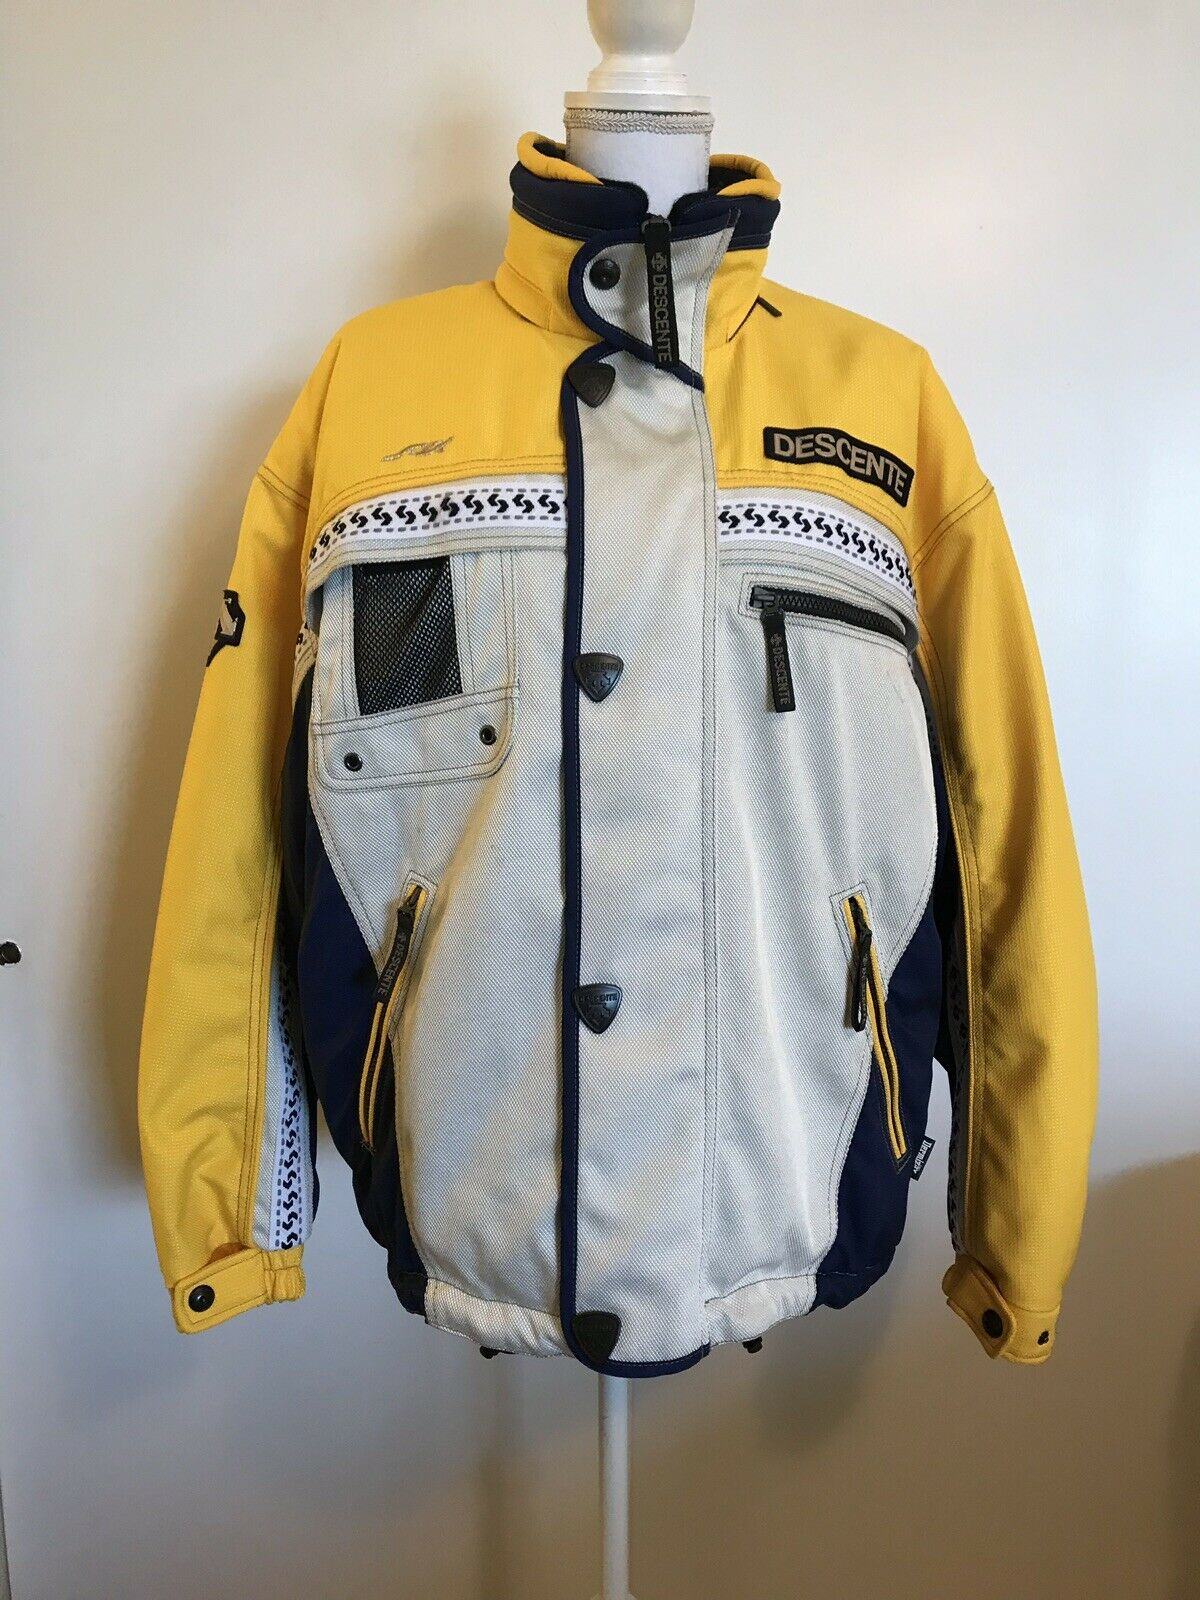 DESCENTE Dermizax Gelb Snowboarding JACKET Medium SKI Vintage